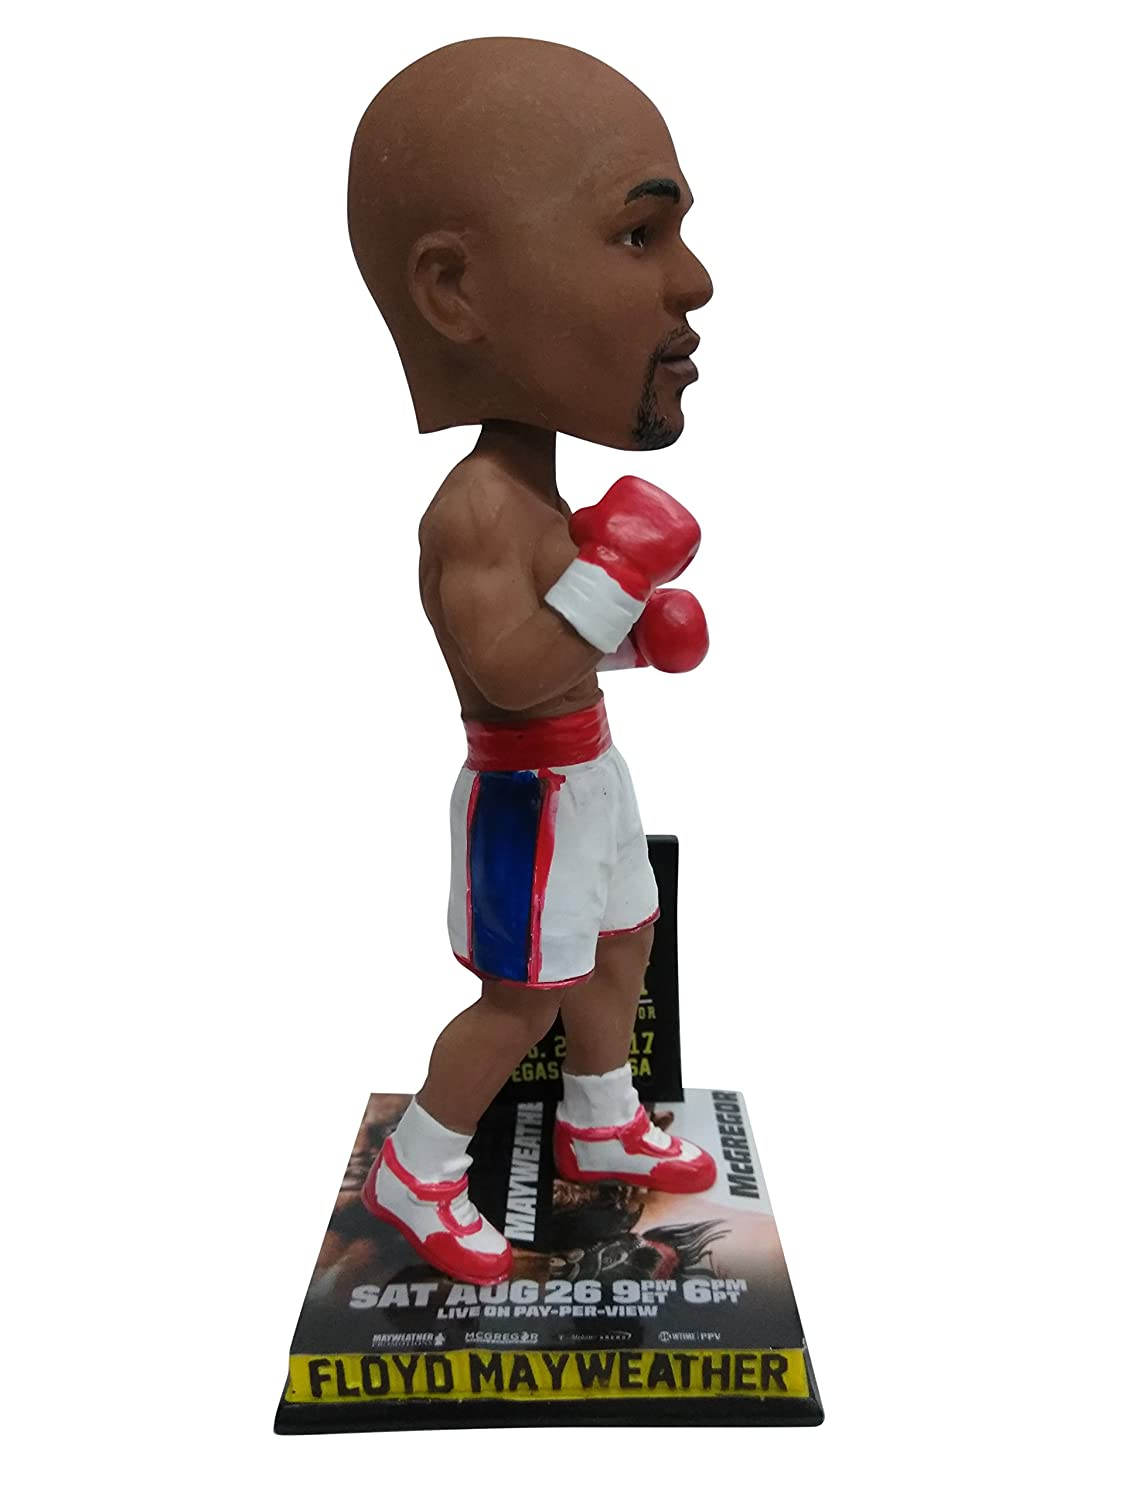 Floyd Mayweather Mayweather vs. McGregor Special Edition Bobblehead National Bobblehead HOF and Museum